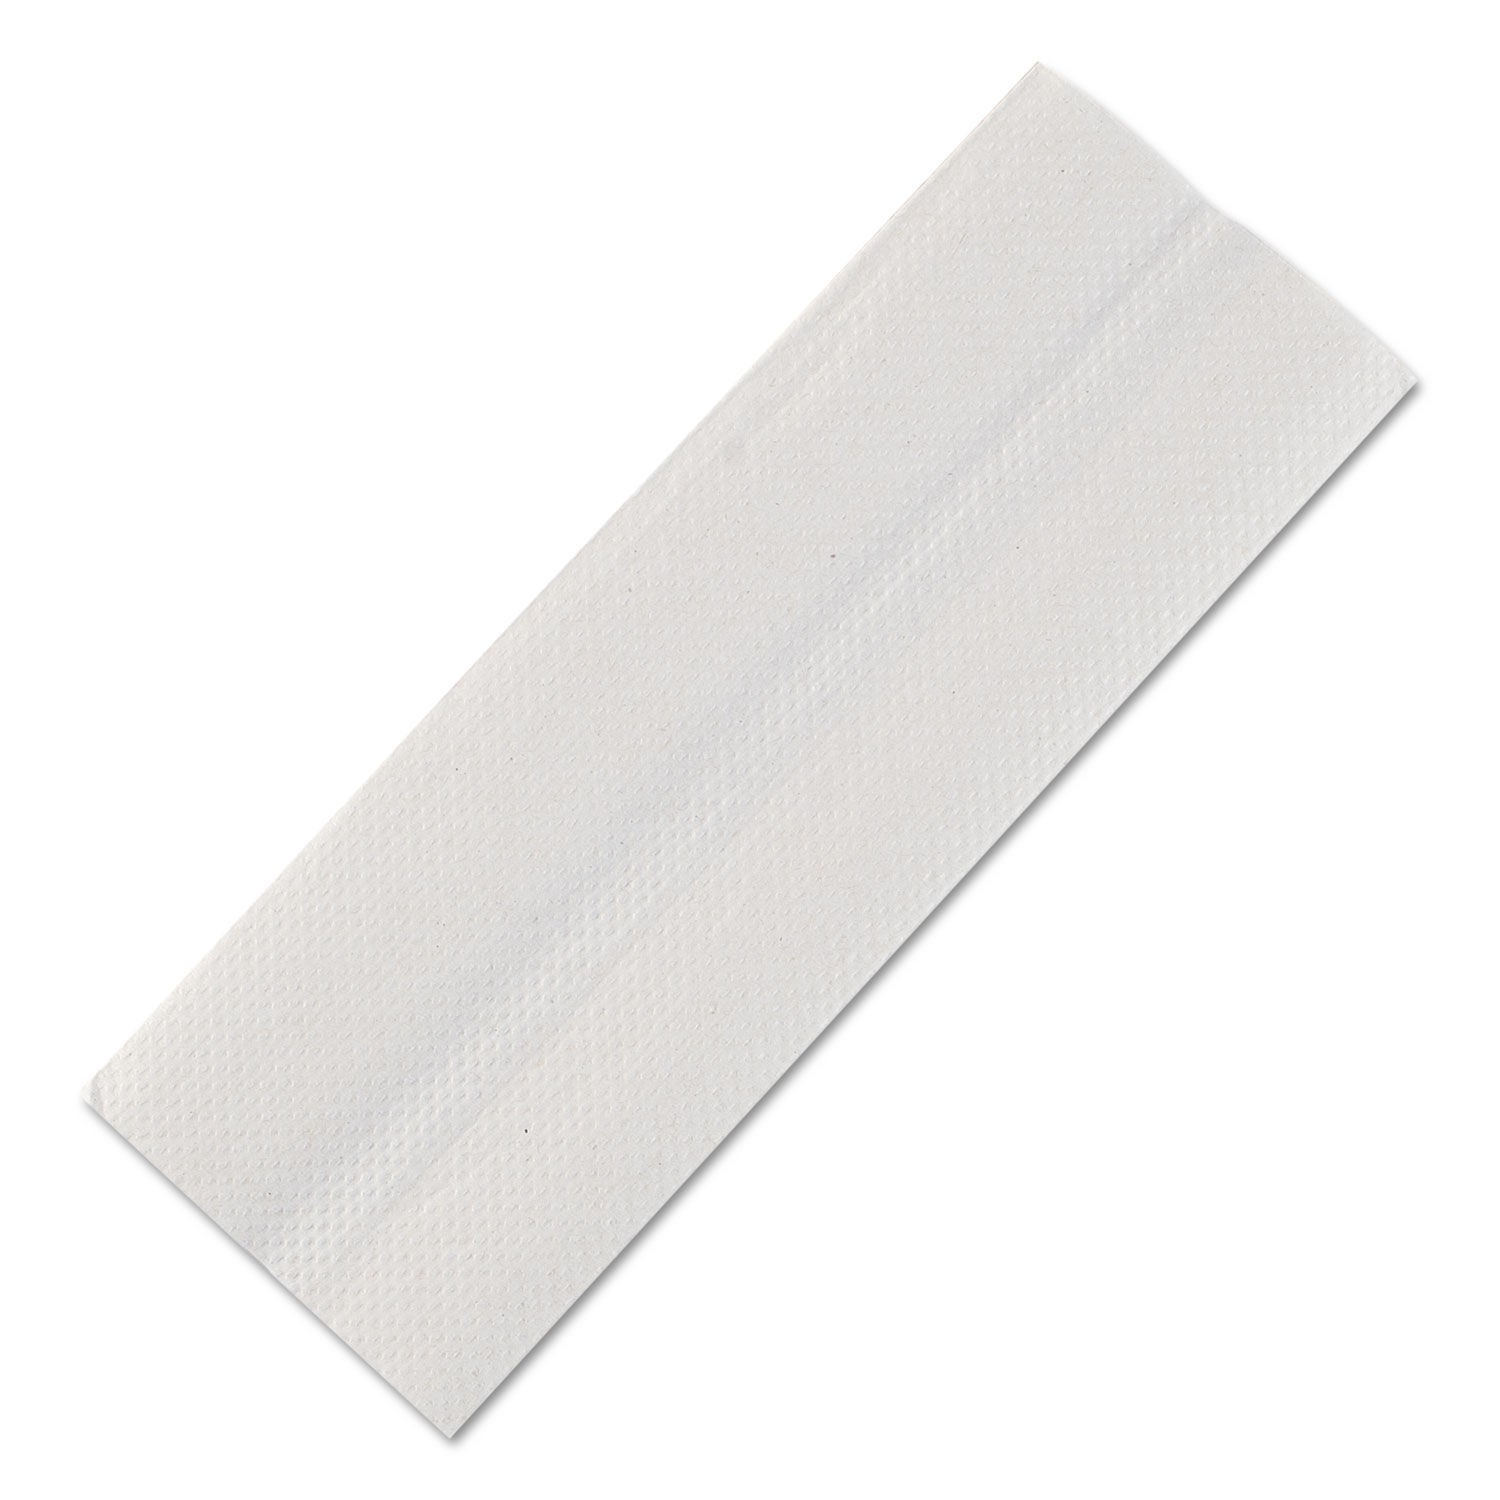 C-Fold Paper Towels, White, 150/Pack, 16 Pack/Carton